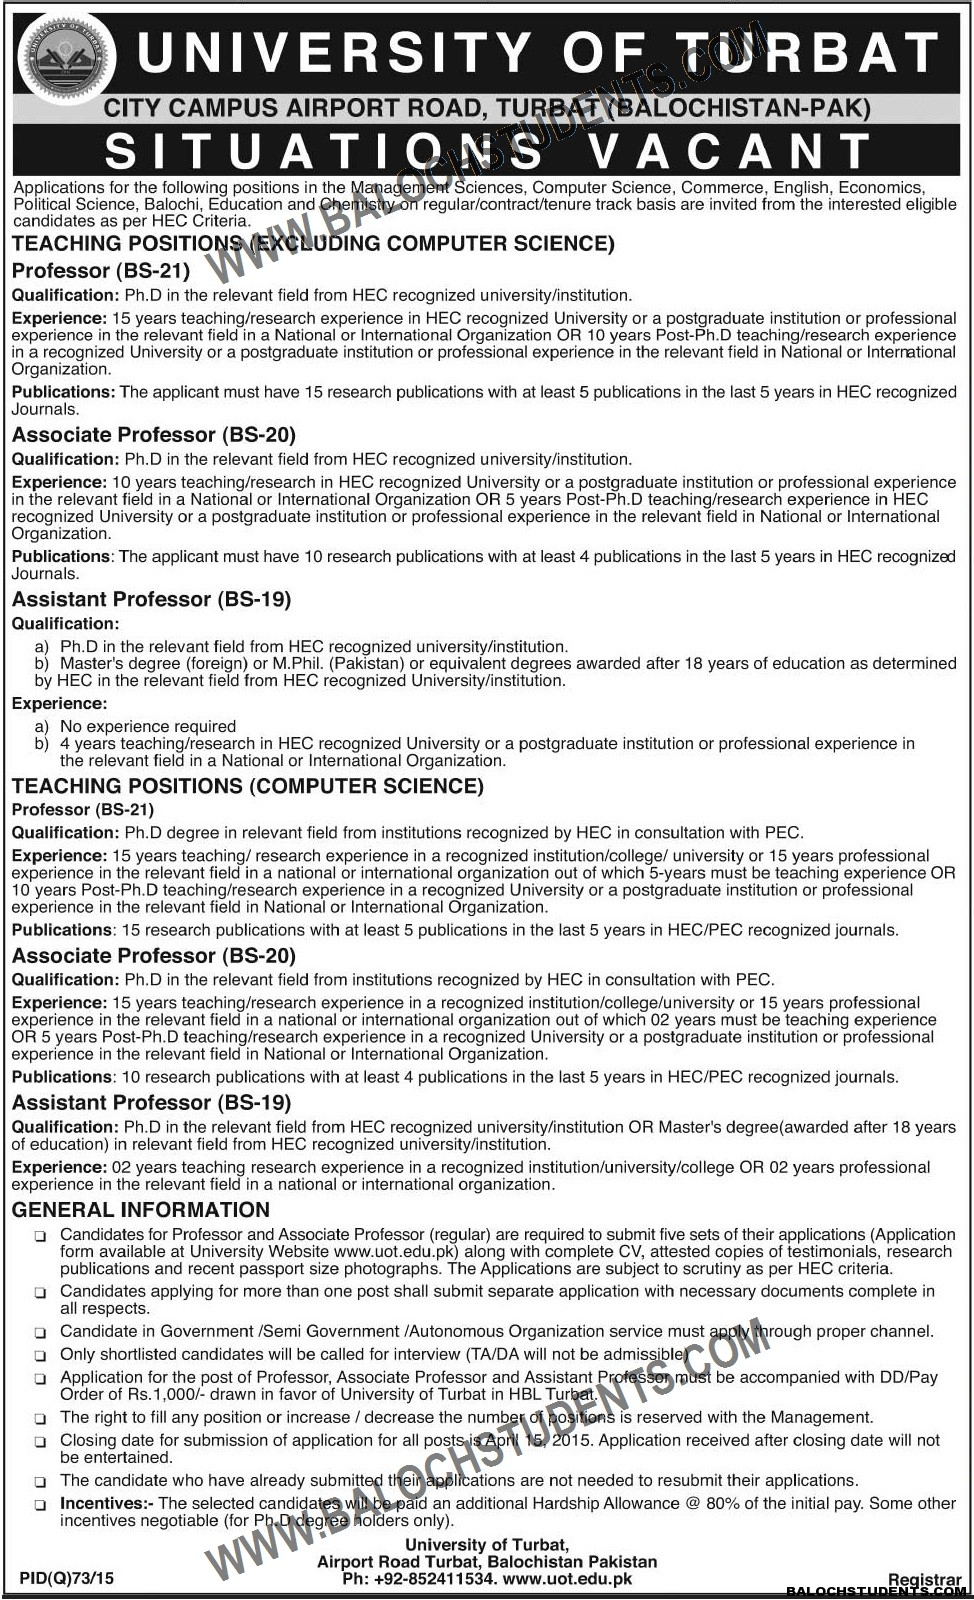 Jobs- University of Turbat